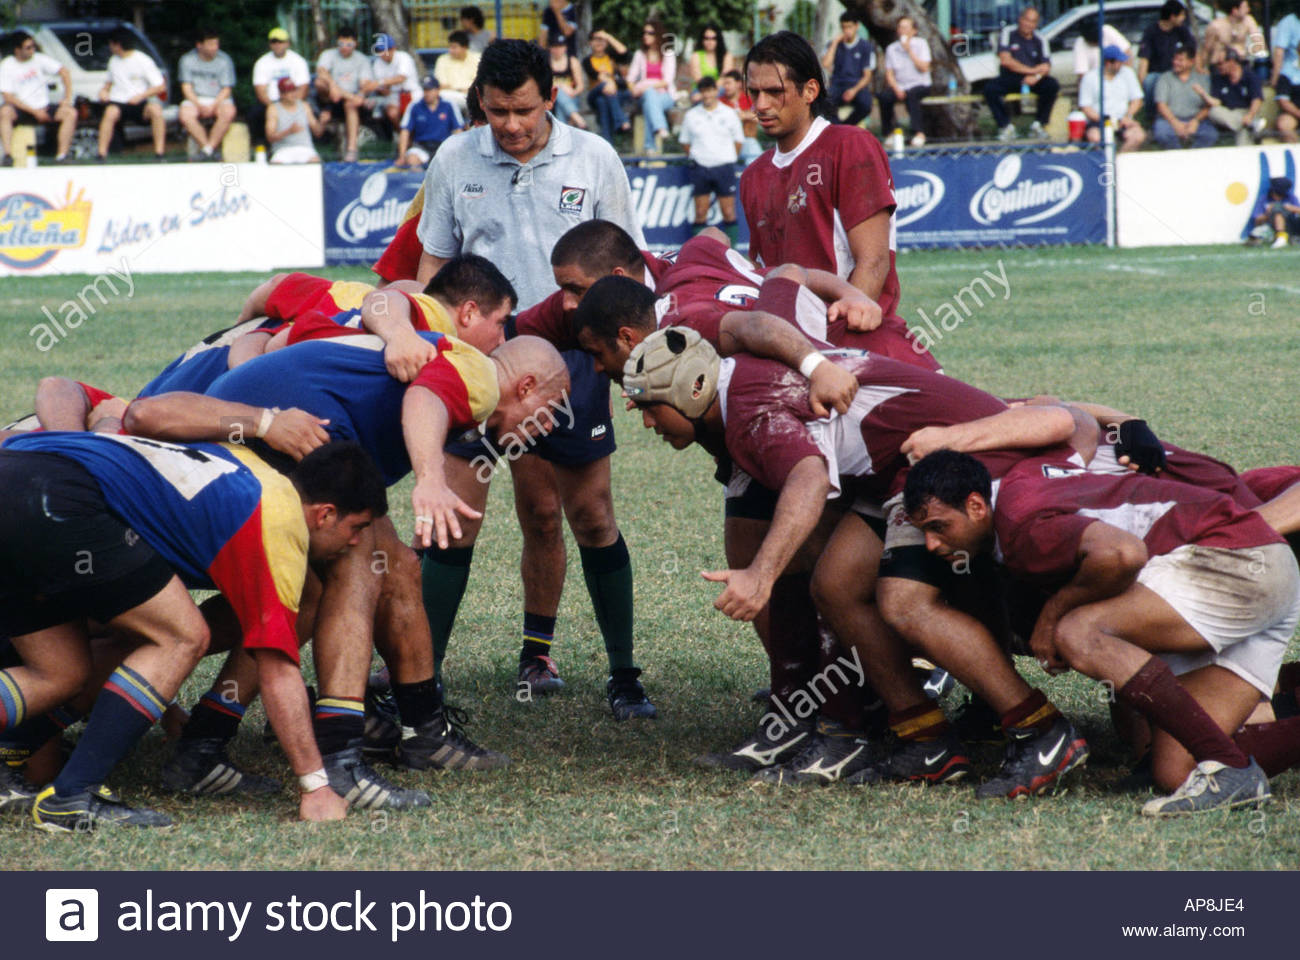 ASUNCION PARAGUAY OCTOBER 2005 5 nations rugby world cup qualification tournament Action from Colombia (blue) Venezuela - Stock Image